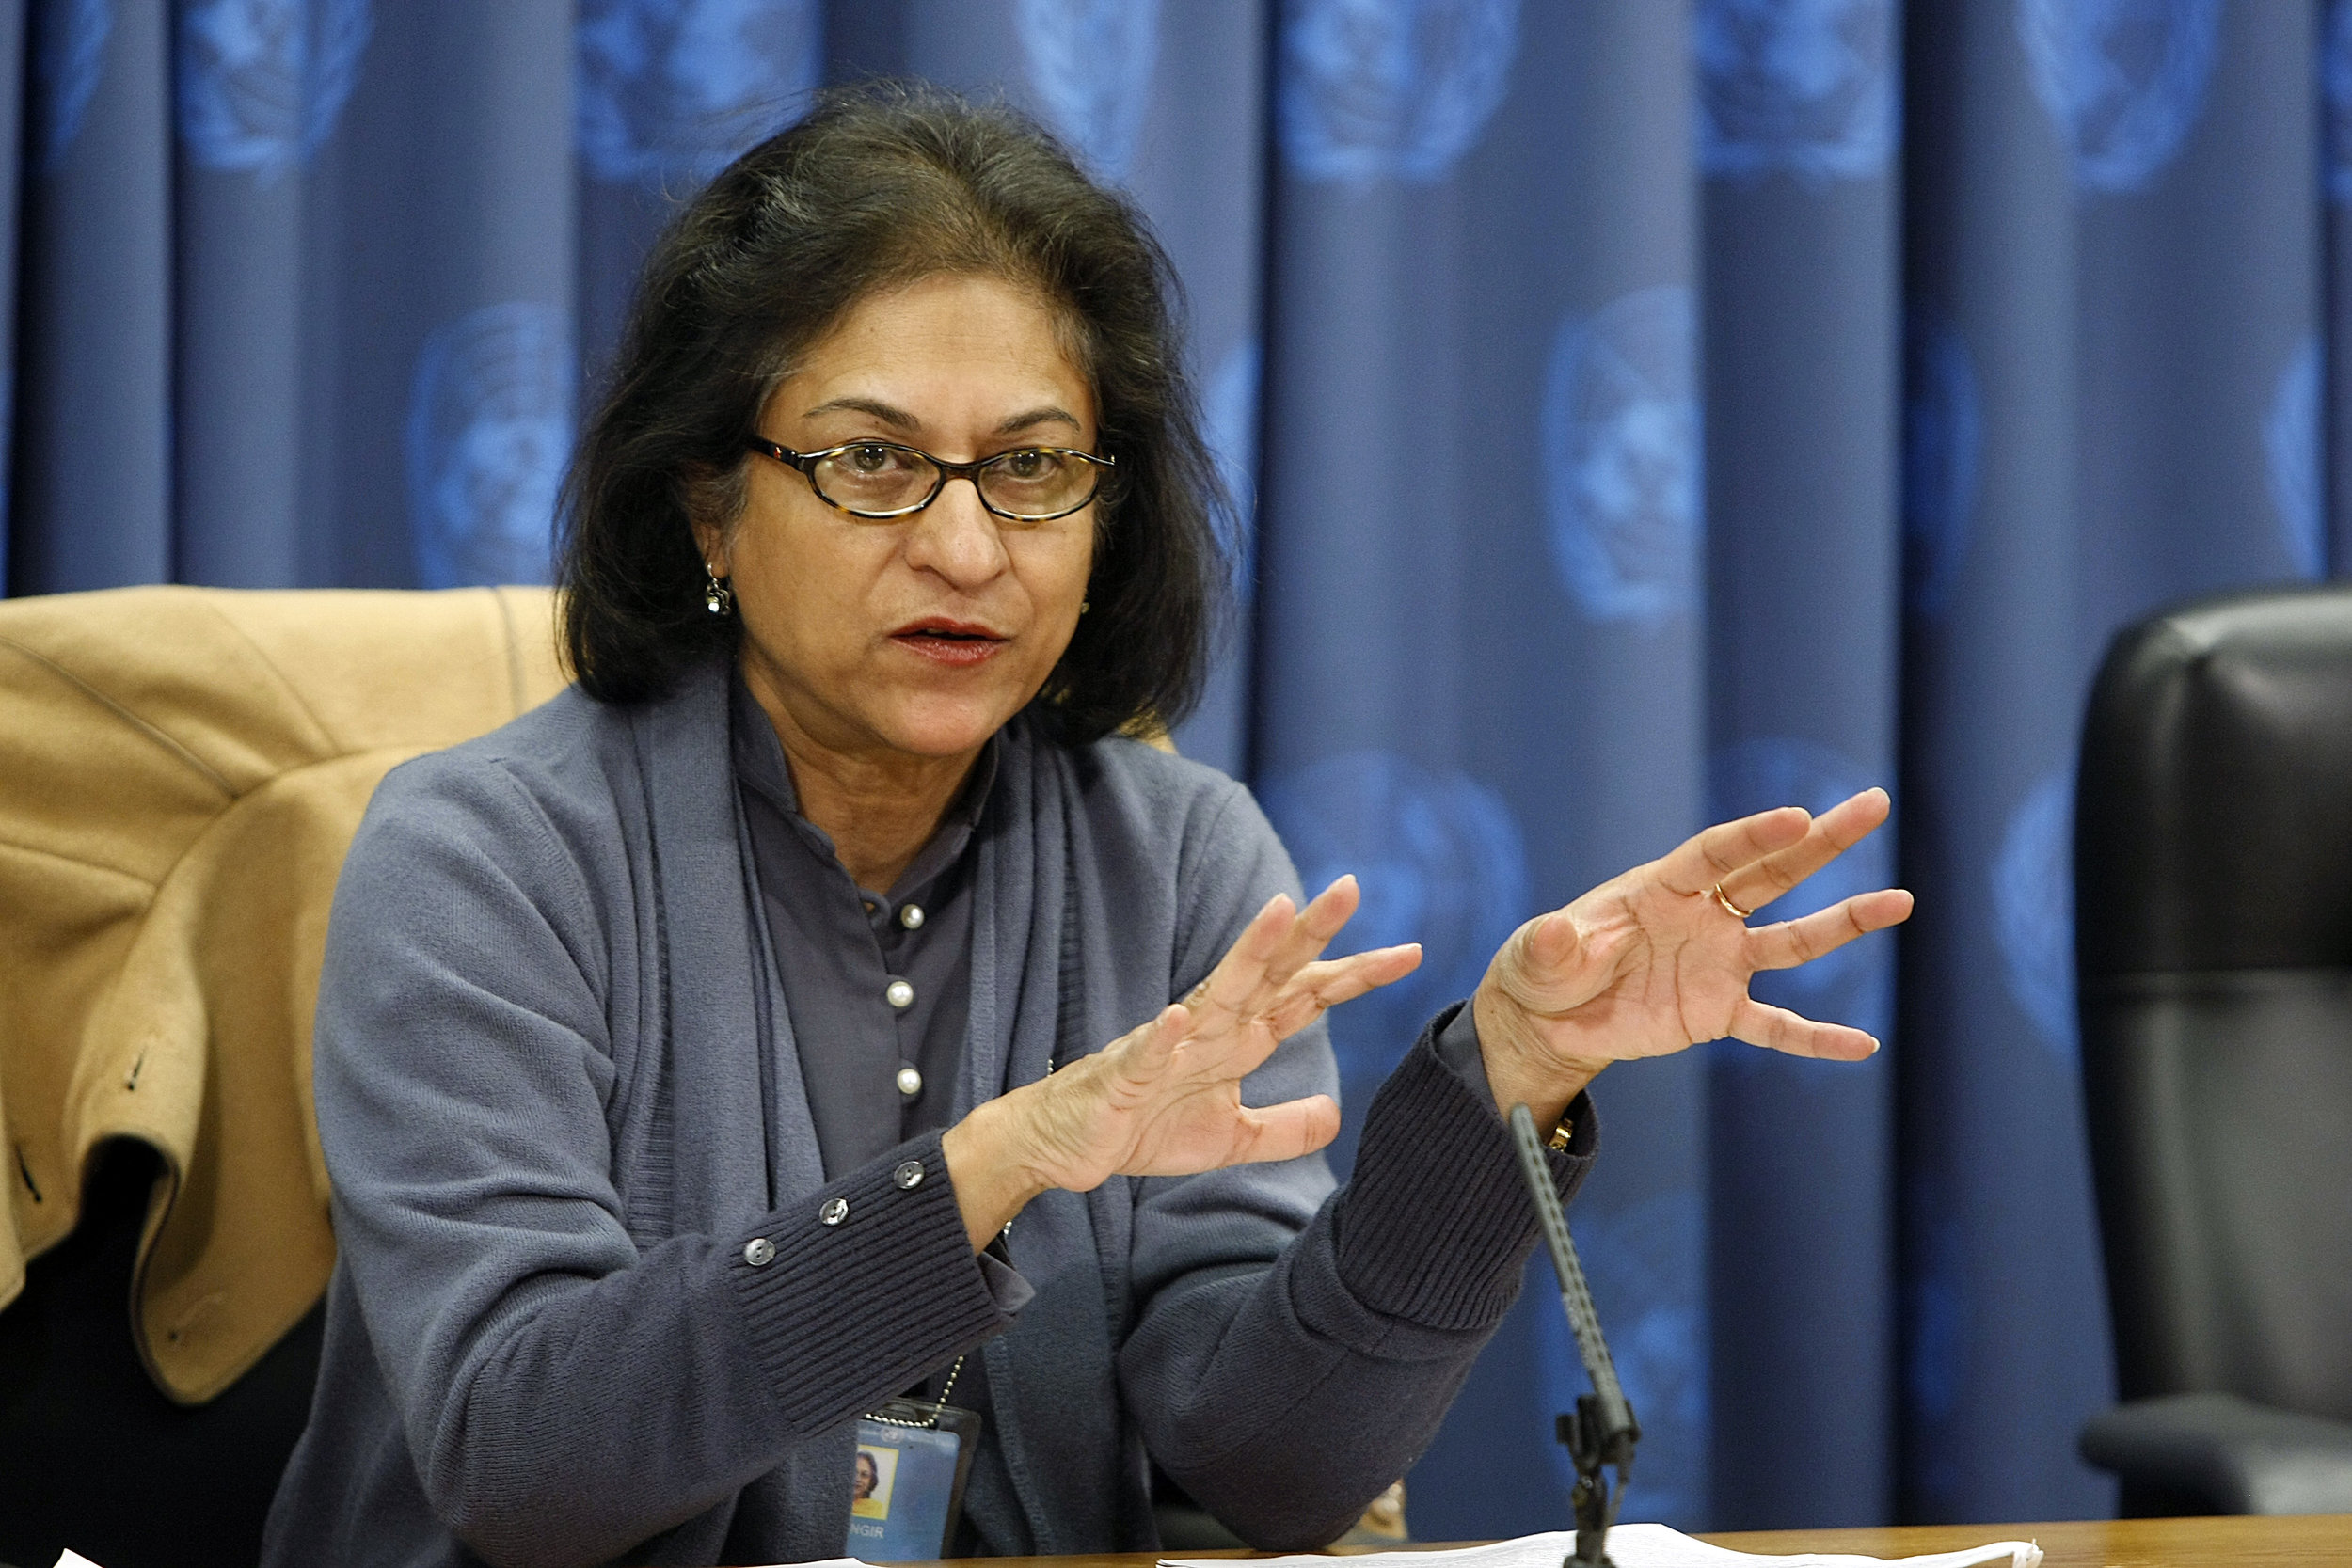 Asma Jahangir speaking to journalists in 2009 while serving as UN Special Rapporteur on freedom of religion or belief. Photo:UN Photo/Paulo Filgueiras